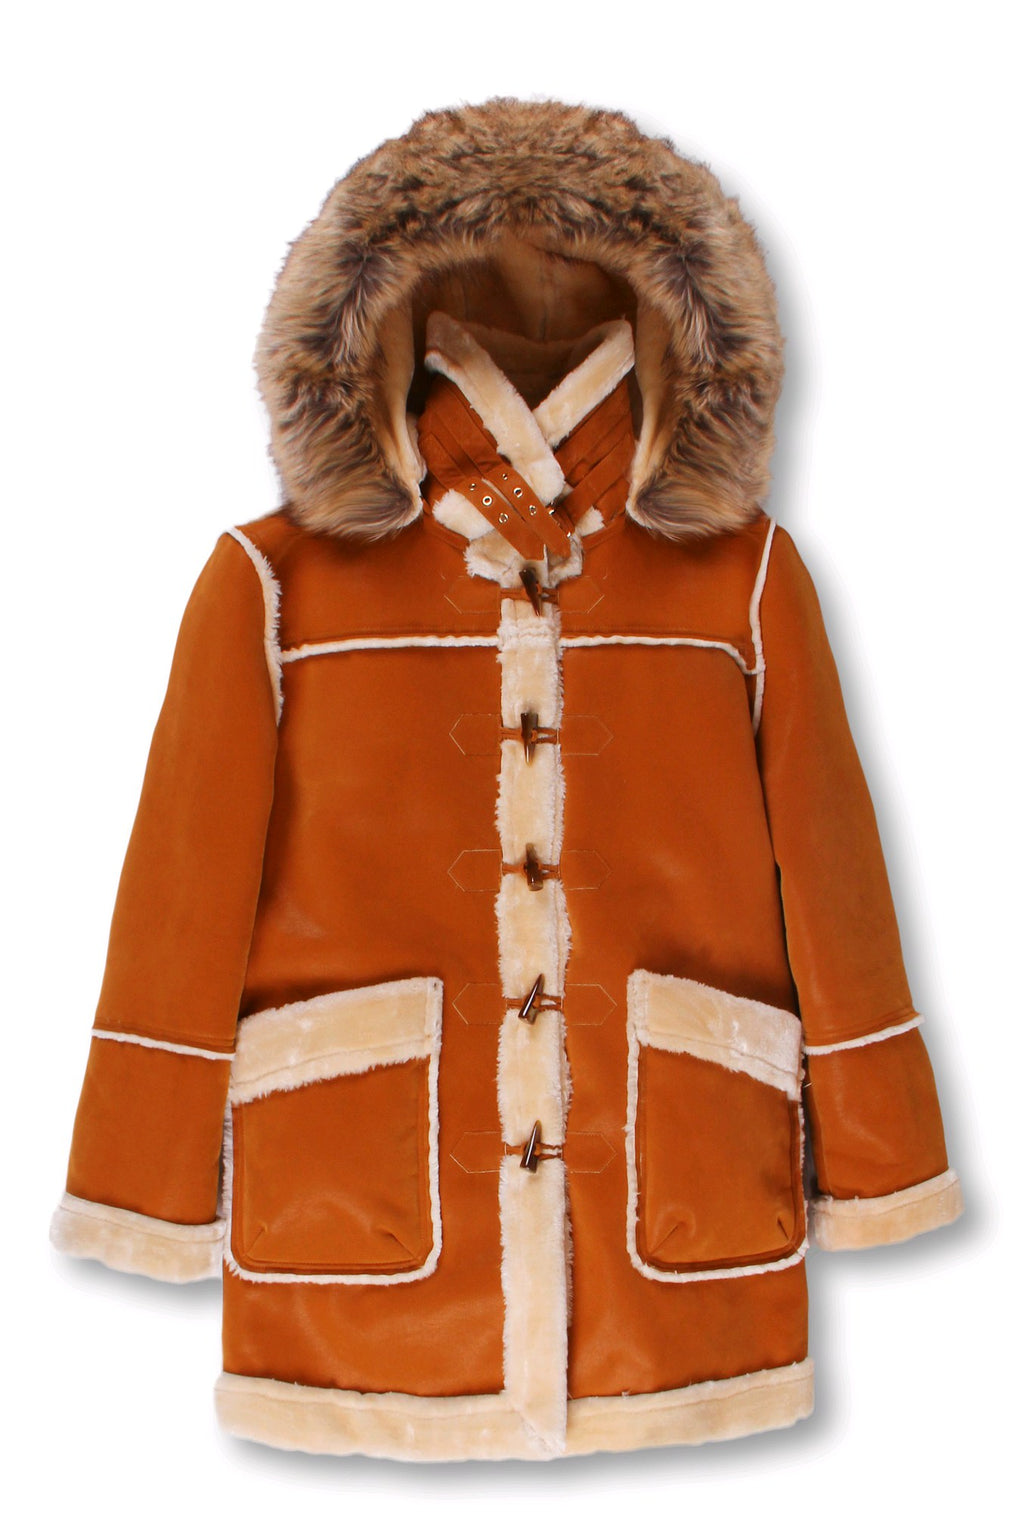 Kids ¾ Toggle Faux Shearling with Detachable Hood - Cognac with Natural